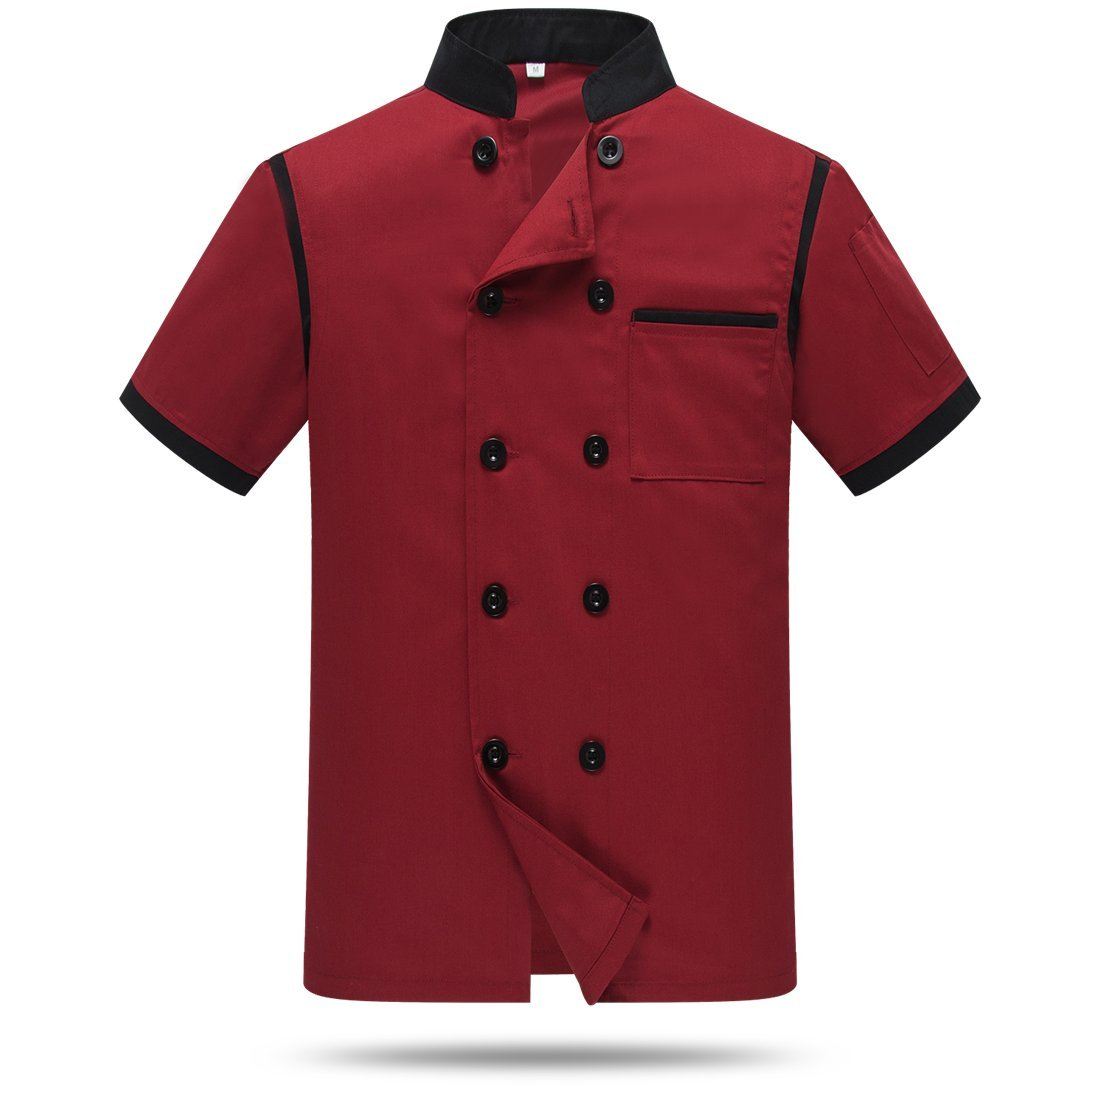 Chef Jackets Waiter Coat Short Sleeves Back and Underarm Mesh Size XXS (Label:M) Red by WAIWAIZUI